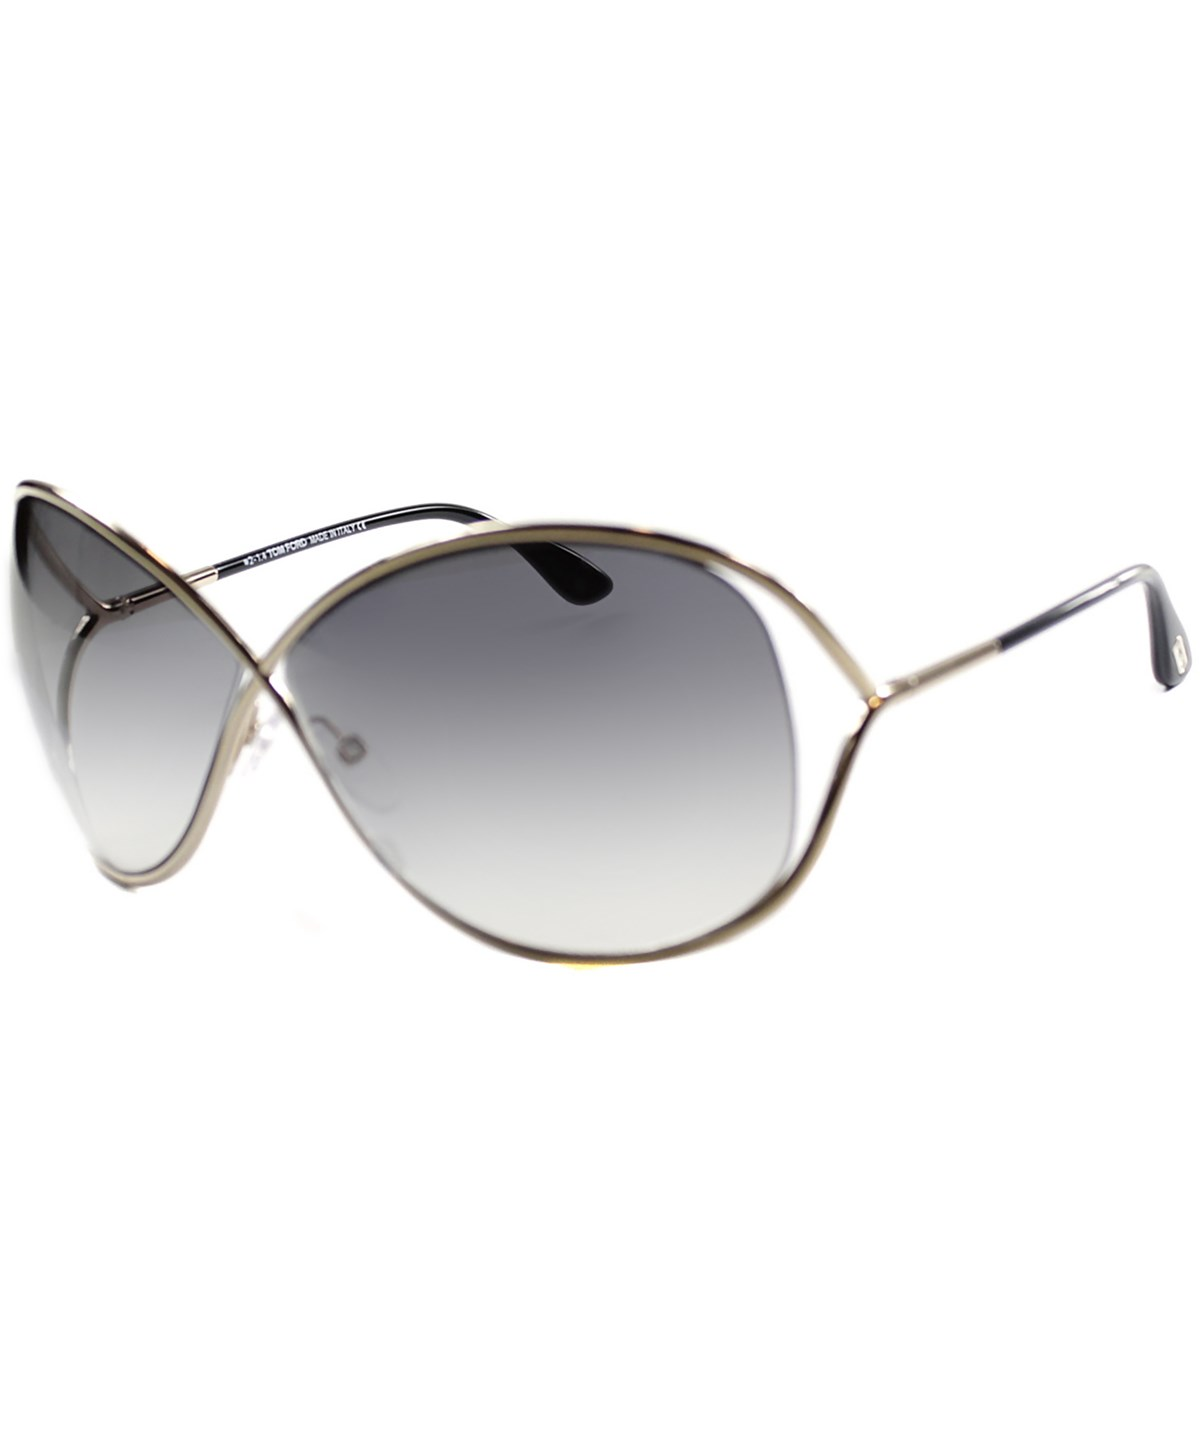 49646f1a903 Tom Ford Miranda 68Mm Open Temple Oversize Metal Sunglasses - Shiny Gunmetal